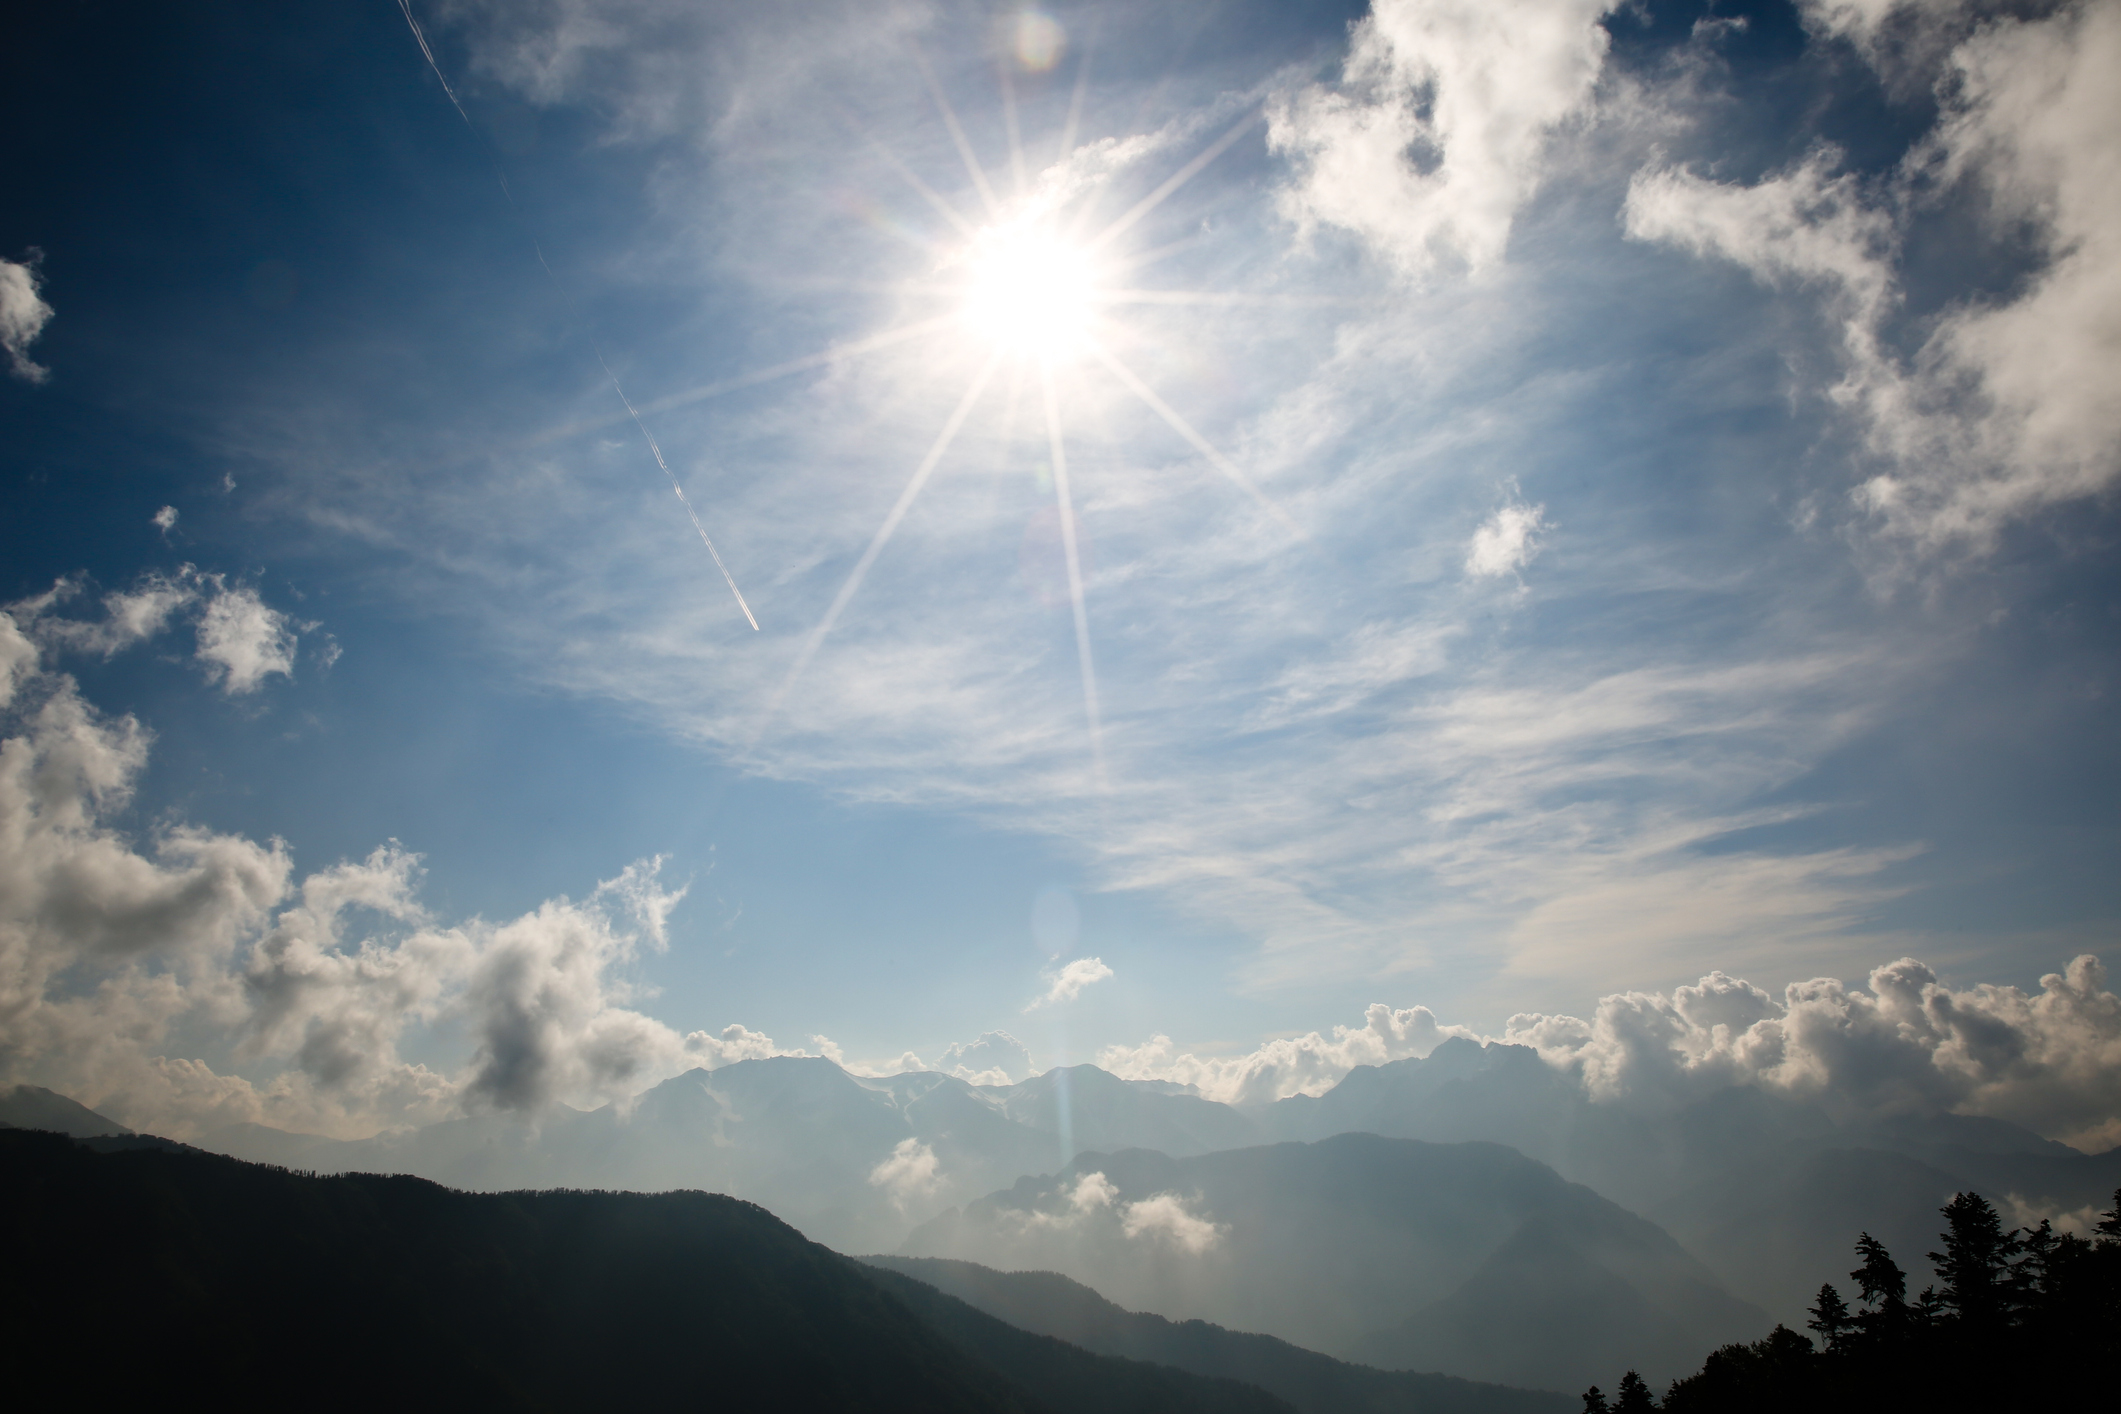 A view of the sun and clouds over mountains.